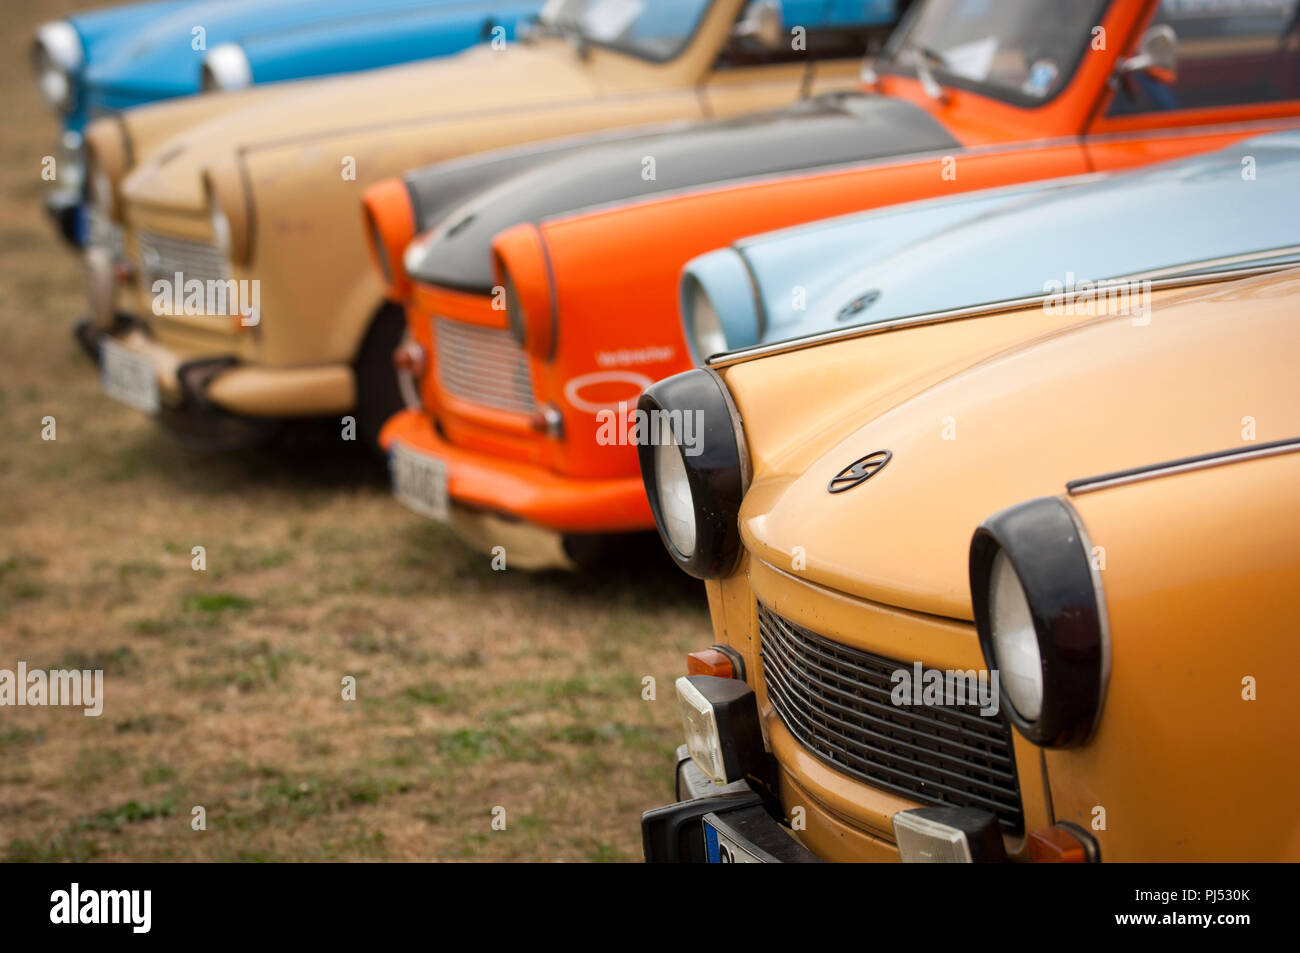 Trabants at the Zwickau annual rally in Saxony, Germany. Stock Photo